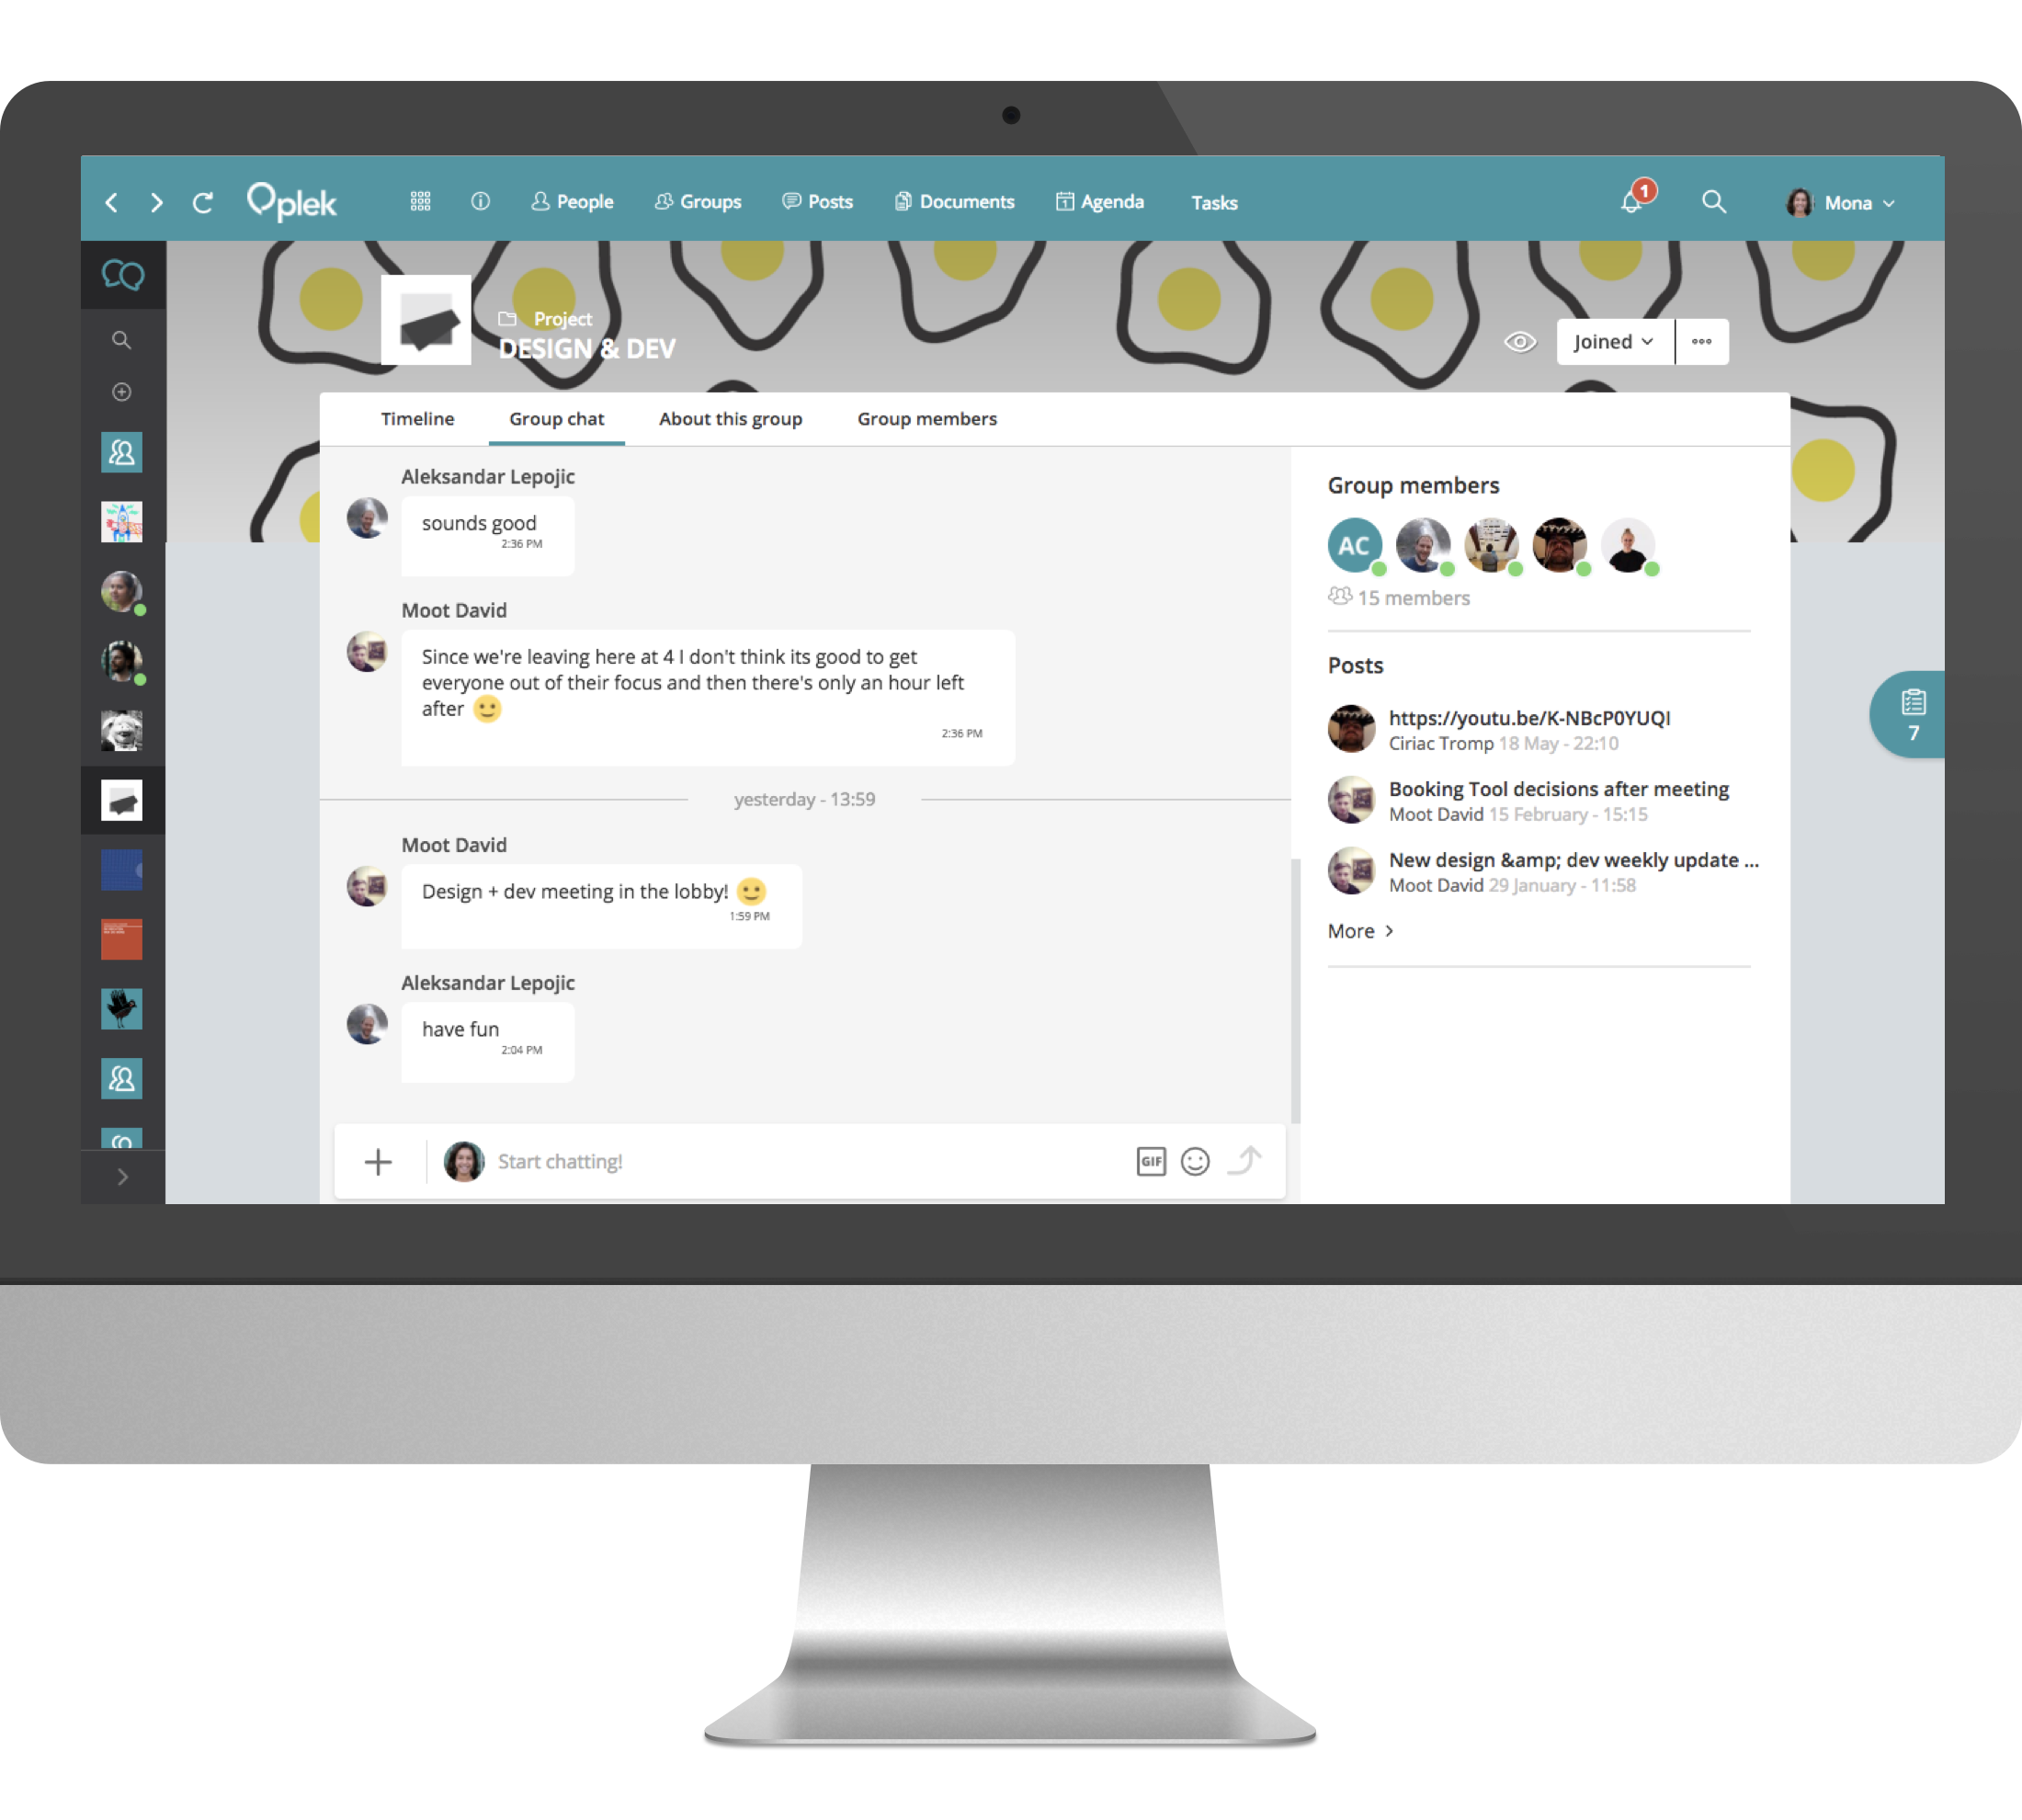 Groups can be open, private or secret. They can include a timeline, calendar, chat, documents, applications, etc.